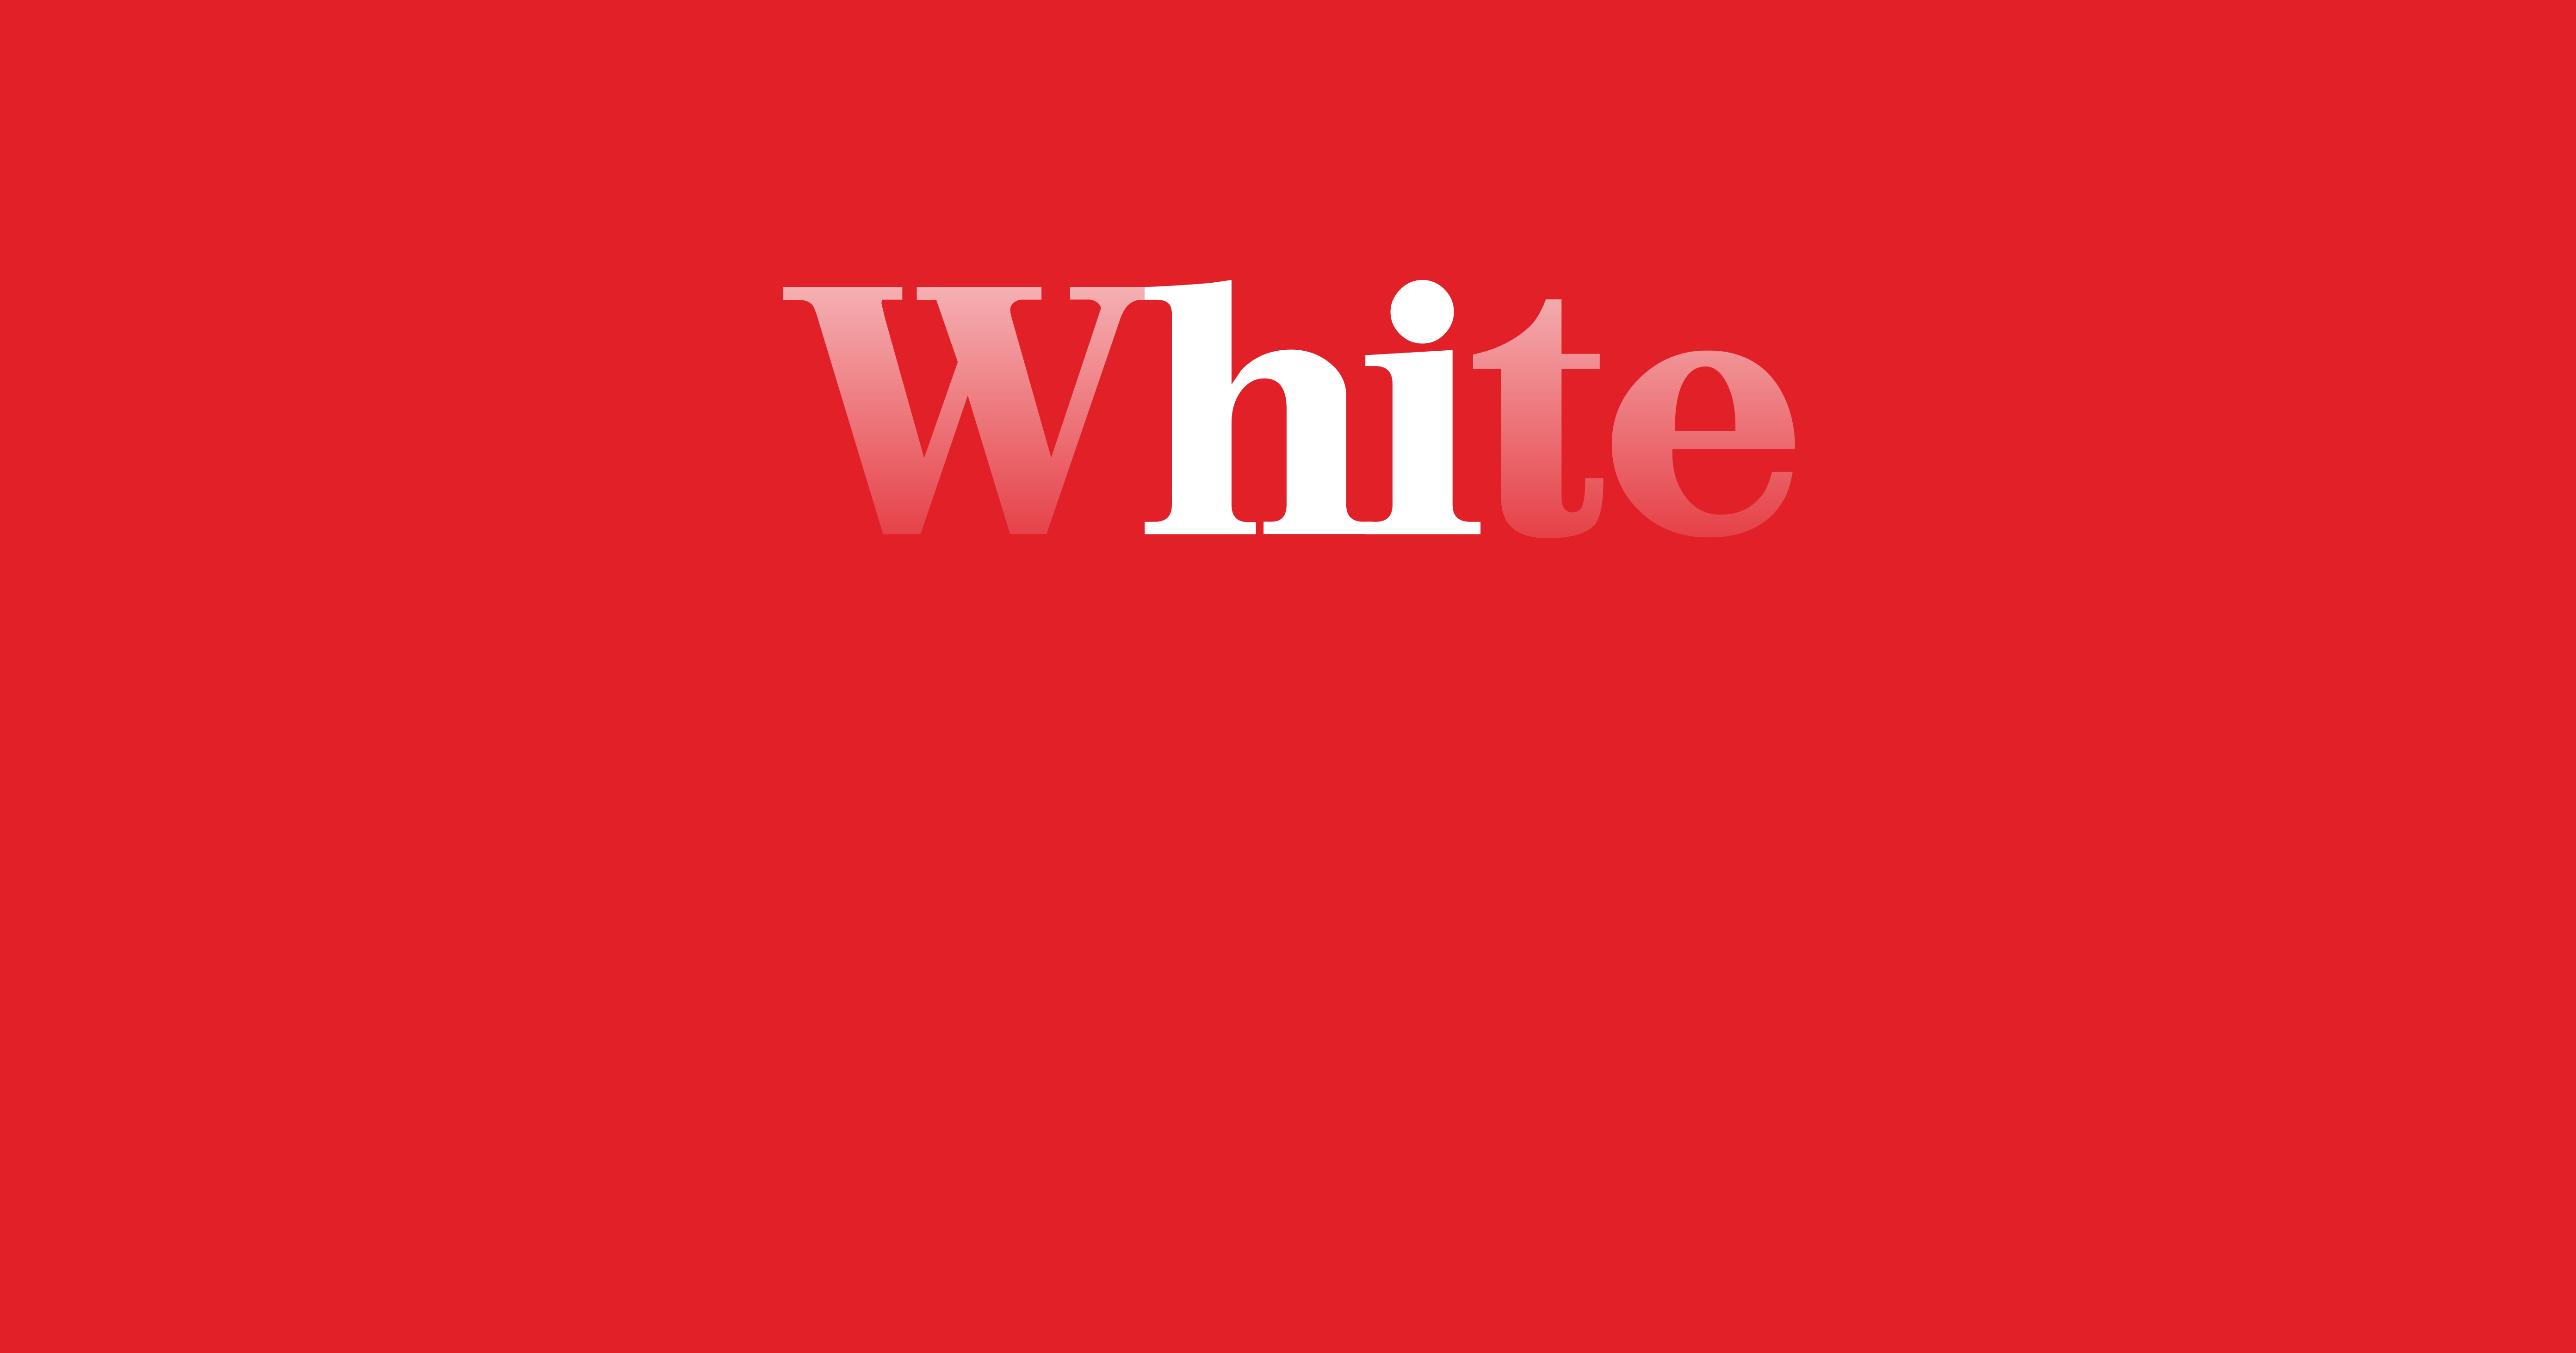 White : Top Advertising Agency in Hyderabad